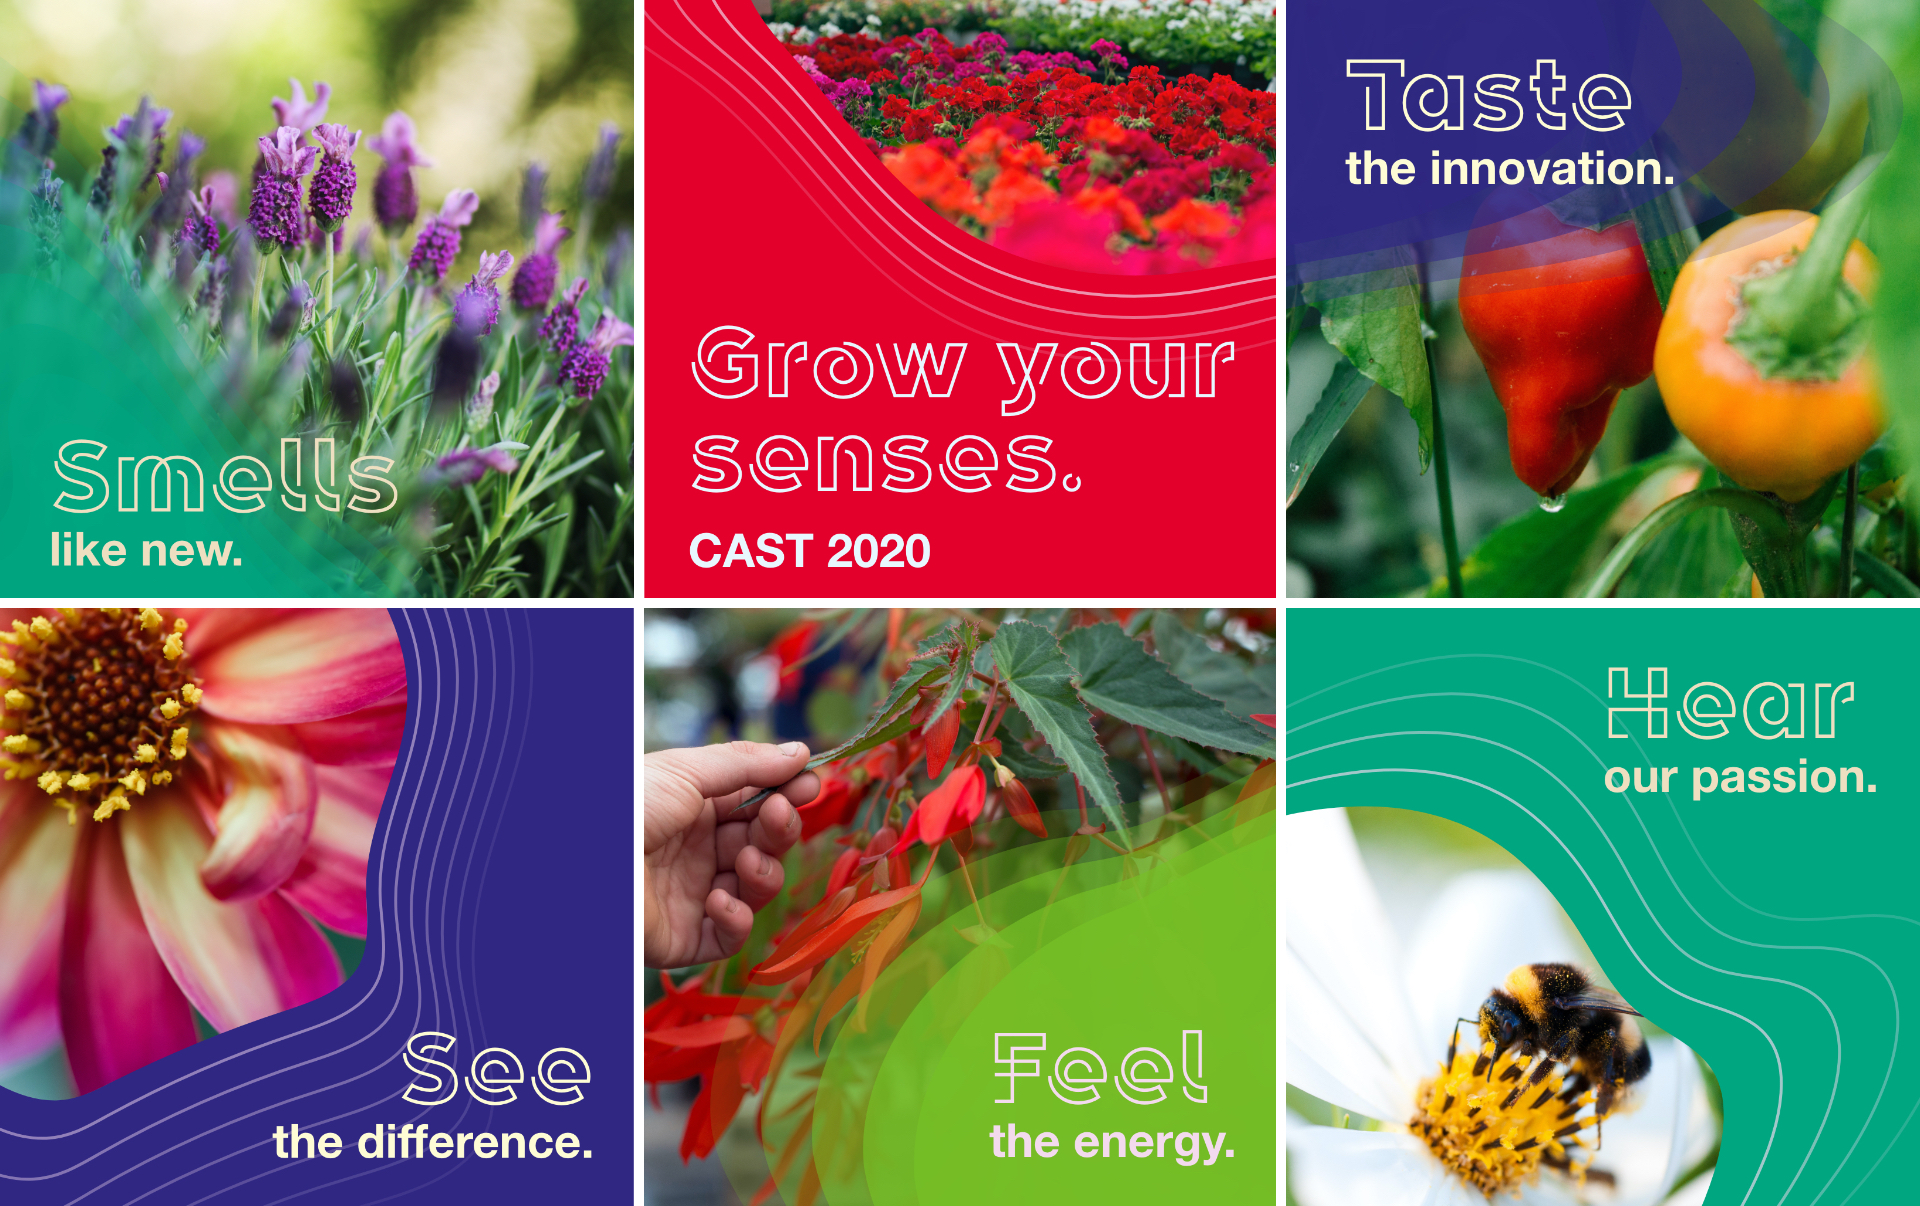 3 by 2 grid of square instagram posts promoting Syngenta Flowers 2020 Webcast